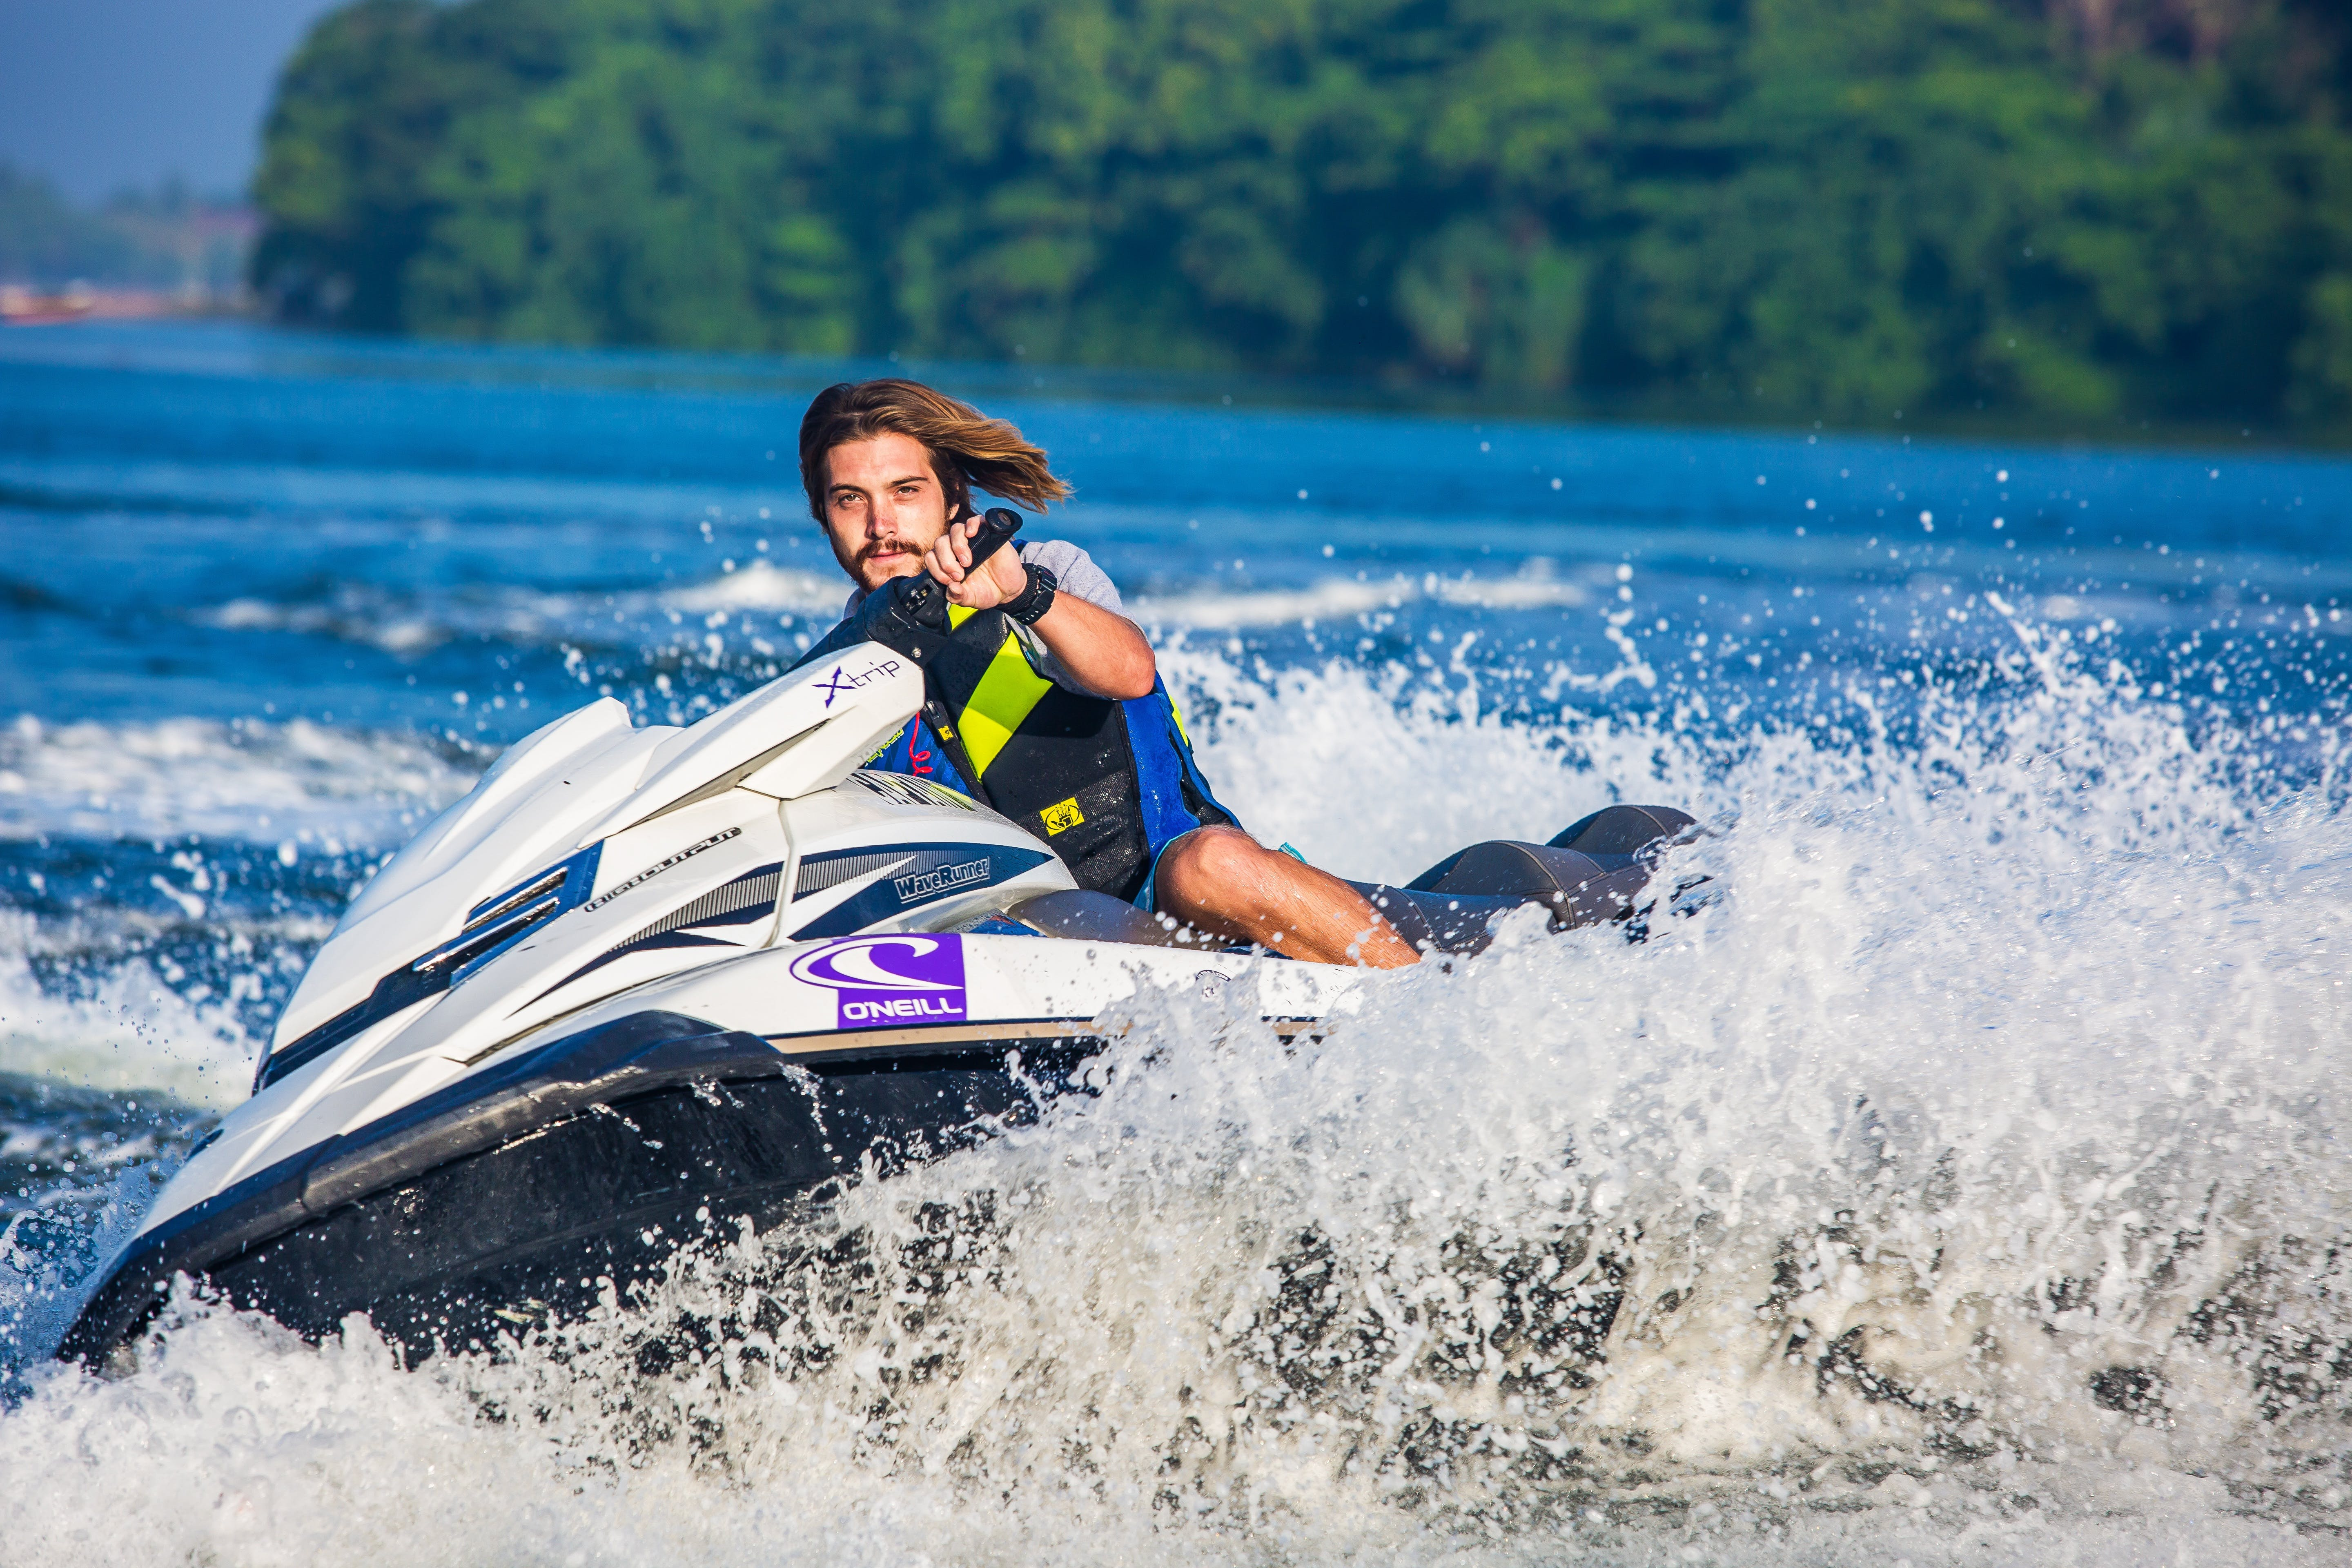 Man in Safety Vest Riding a Personal Watercraft during Daytime